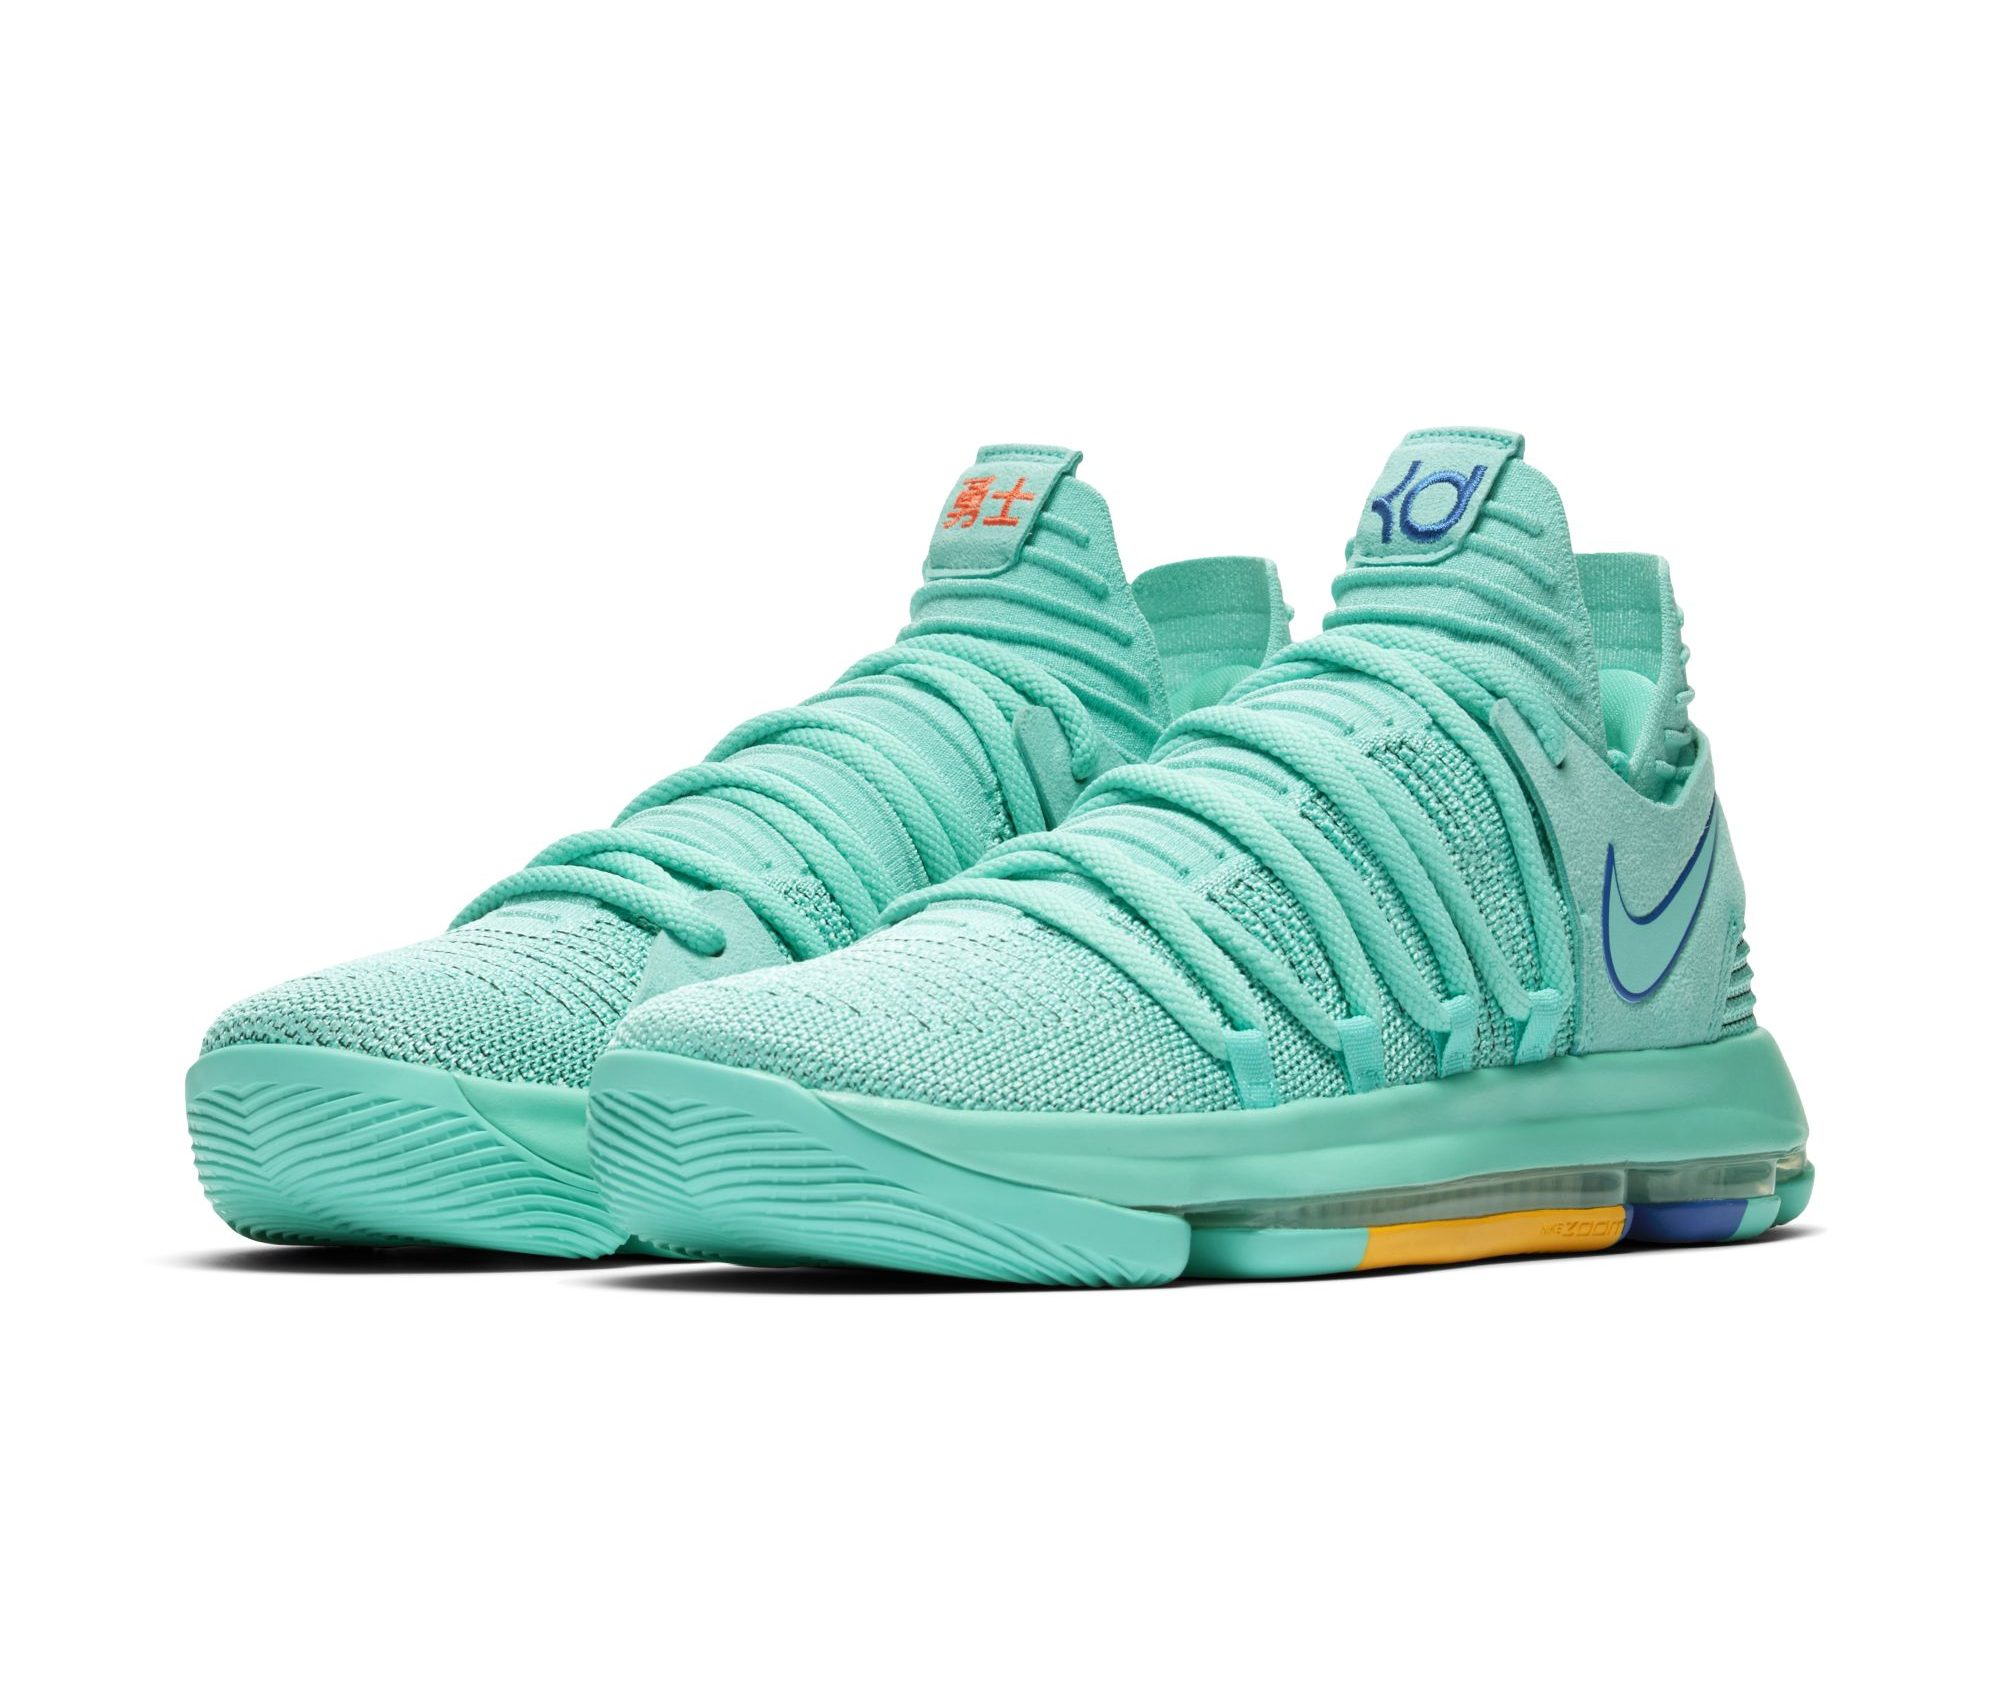 promo code e1289 4d904 A Second 'City Edition' Colorway of the Nike KD 10 is Set to ...